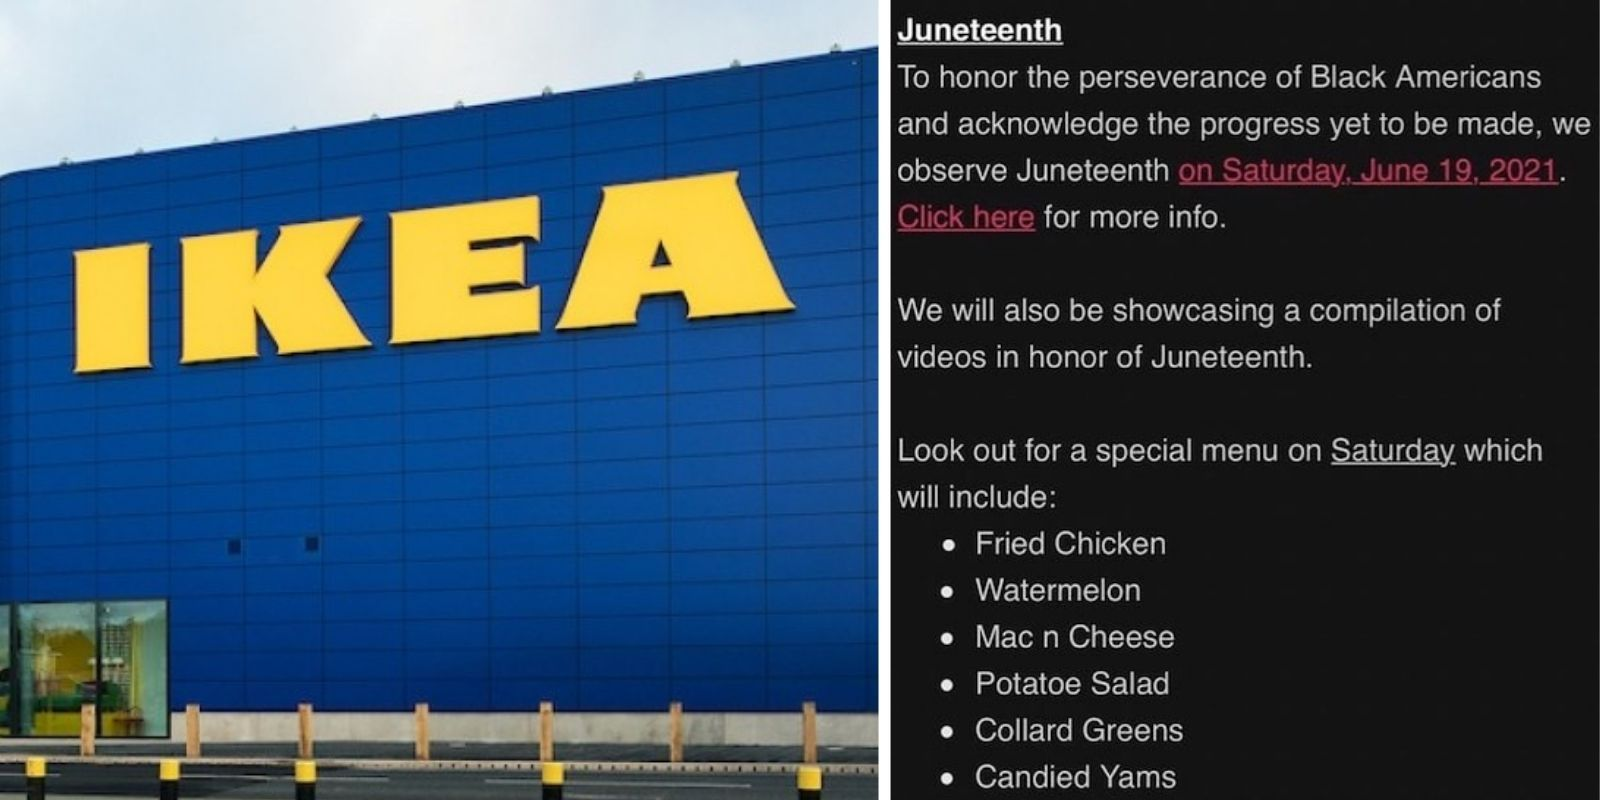 IKEA accused of racism for plans to serve Juneteenth menu of watermelon and fried chicken